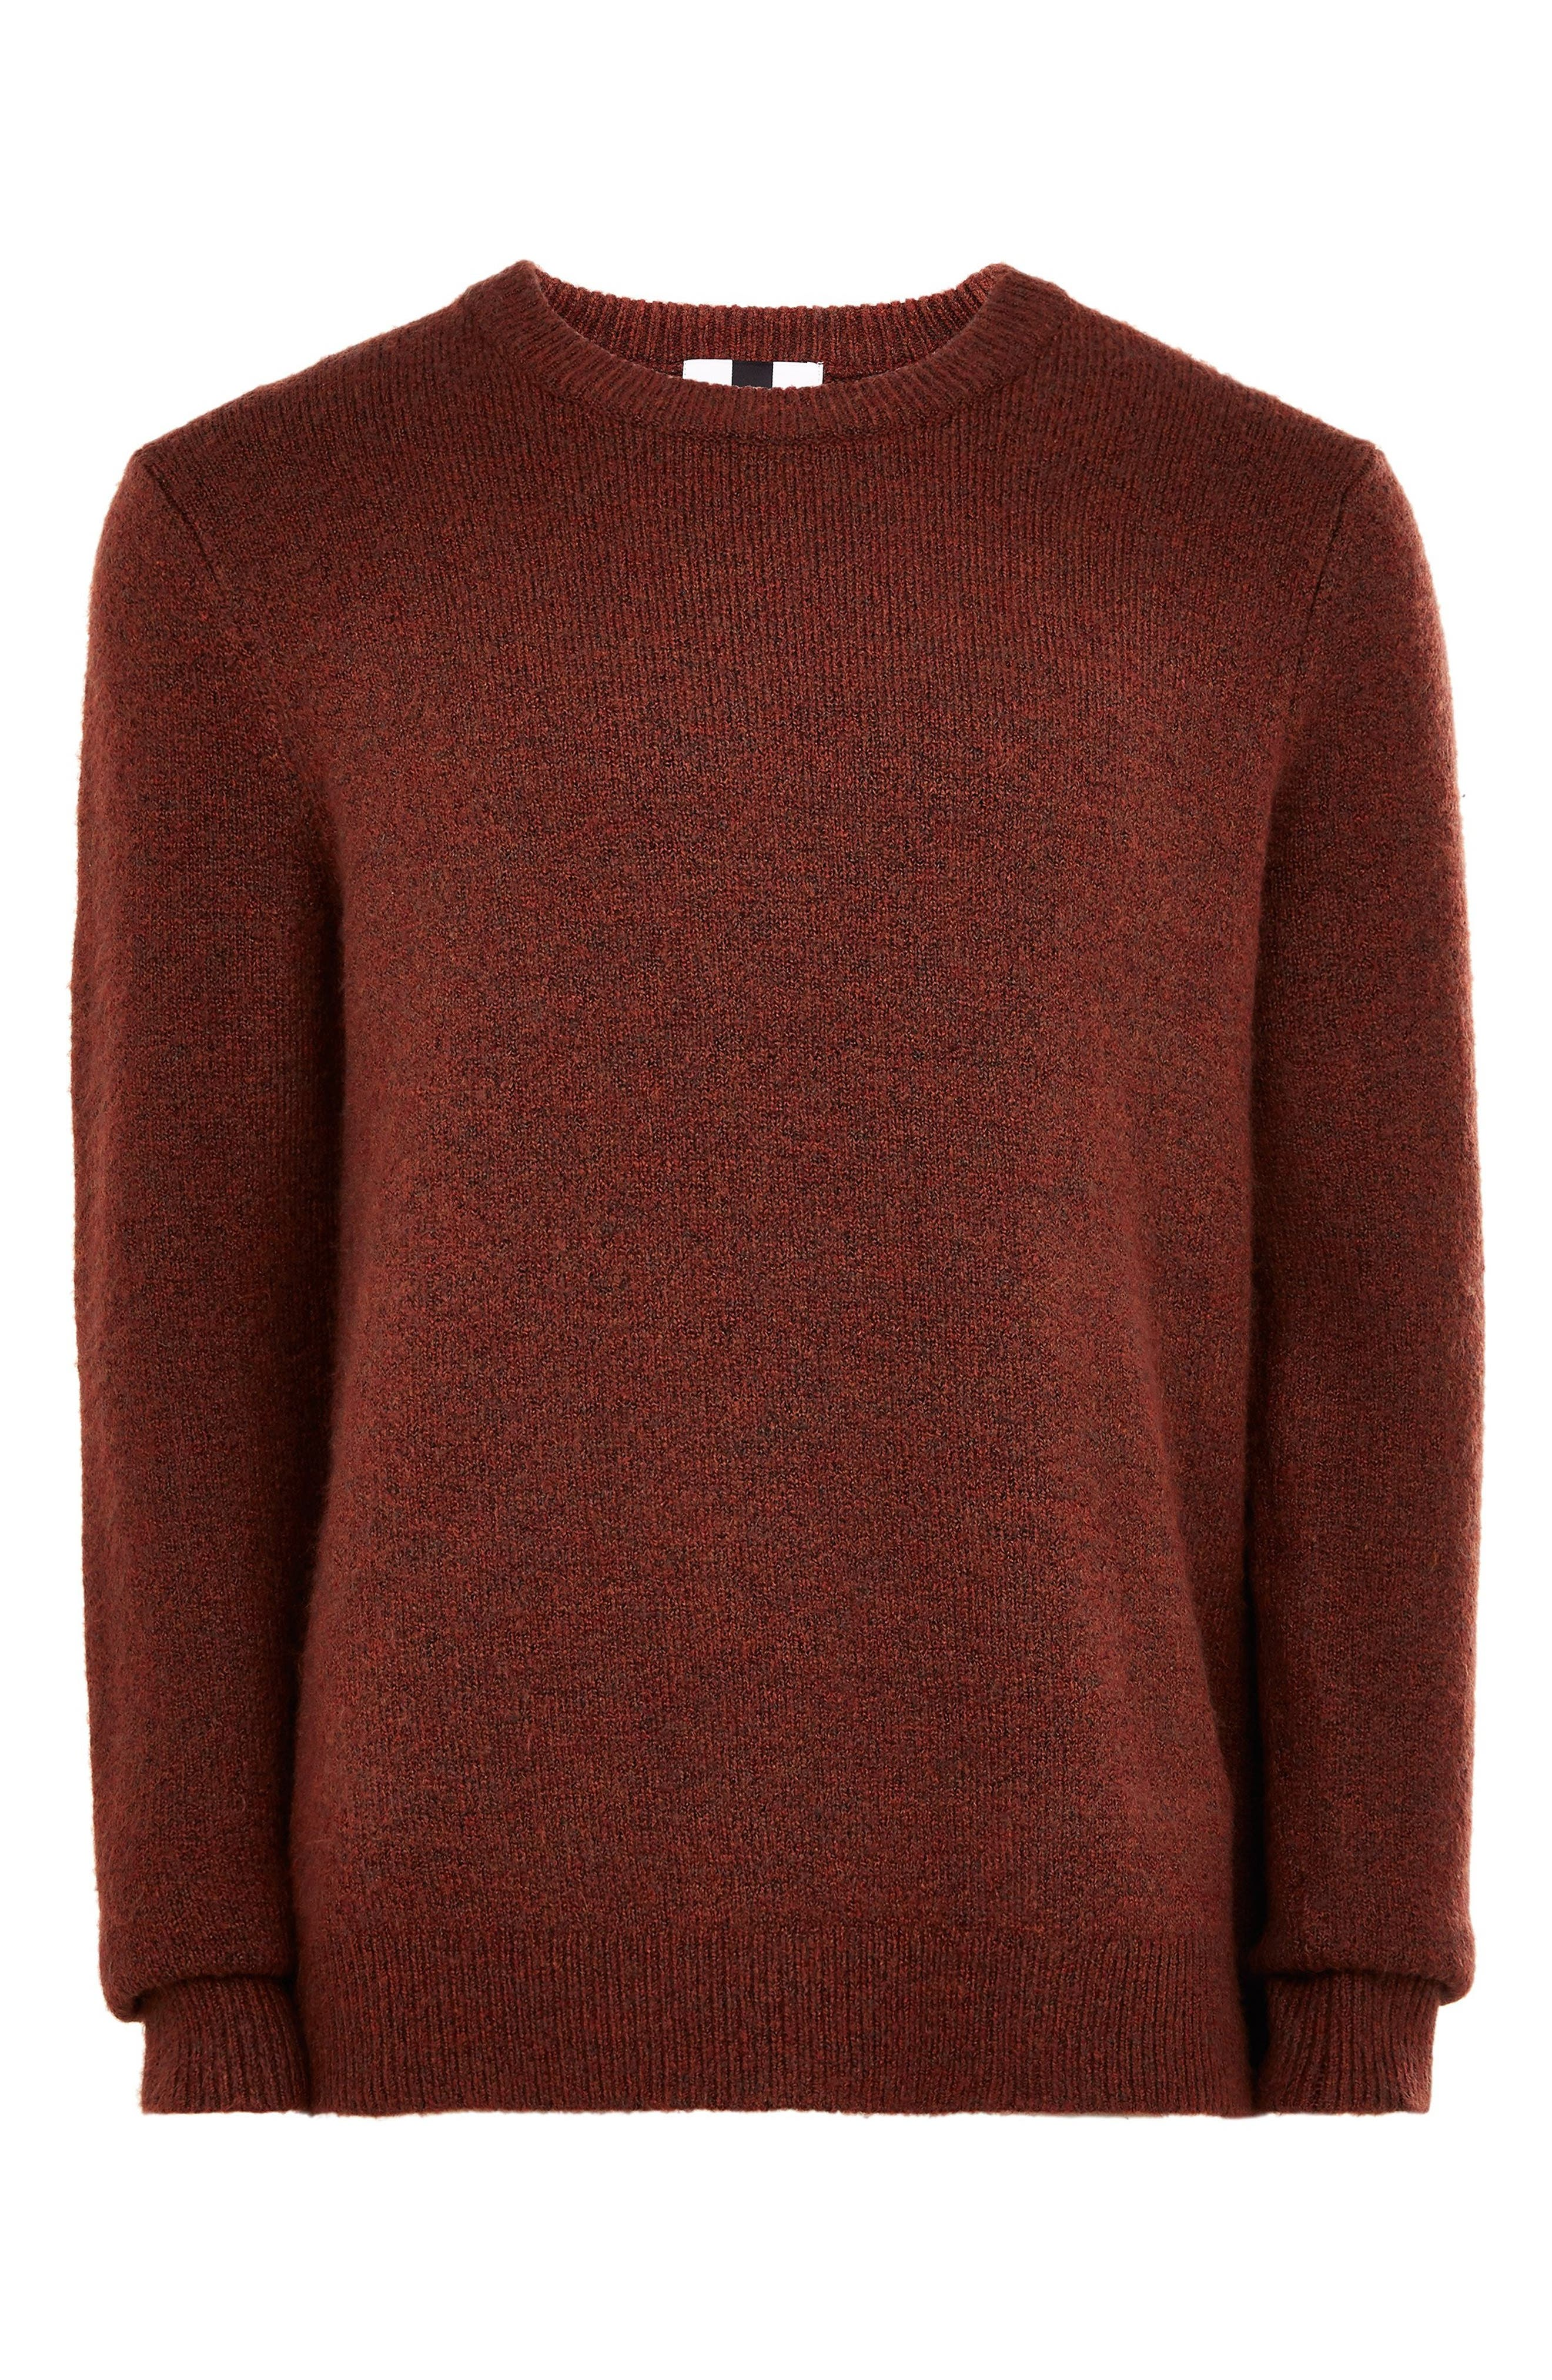 TOPMAN,                             Harlow Classic Fit Sweater,                             Alternate thumbnail 4, color,                             200